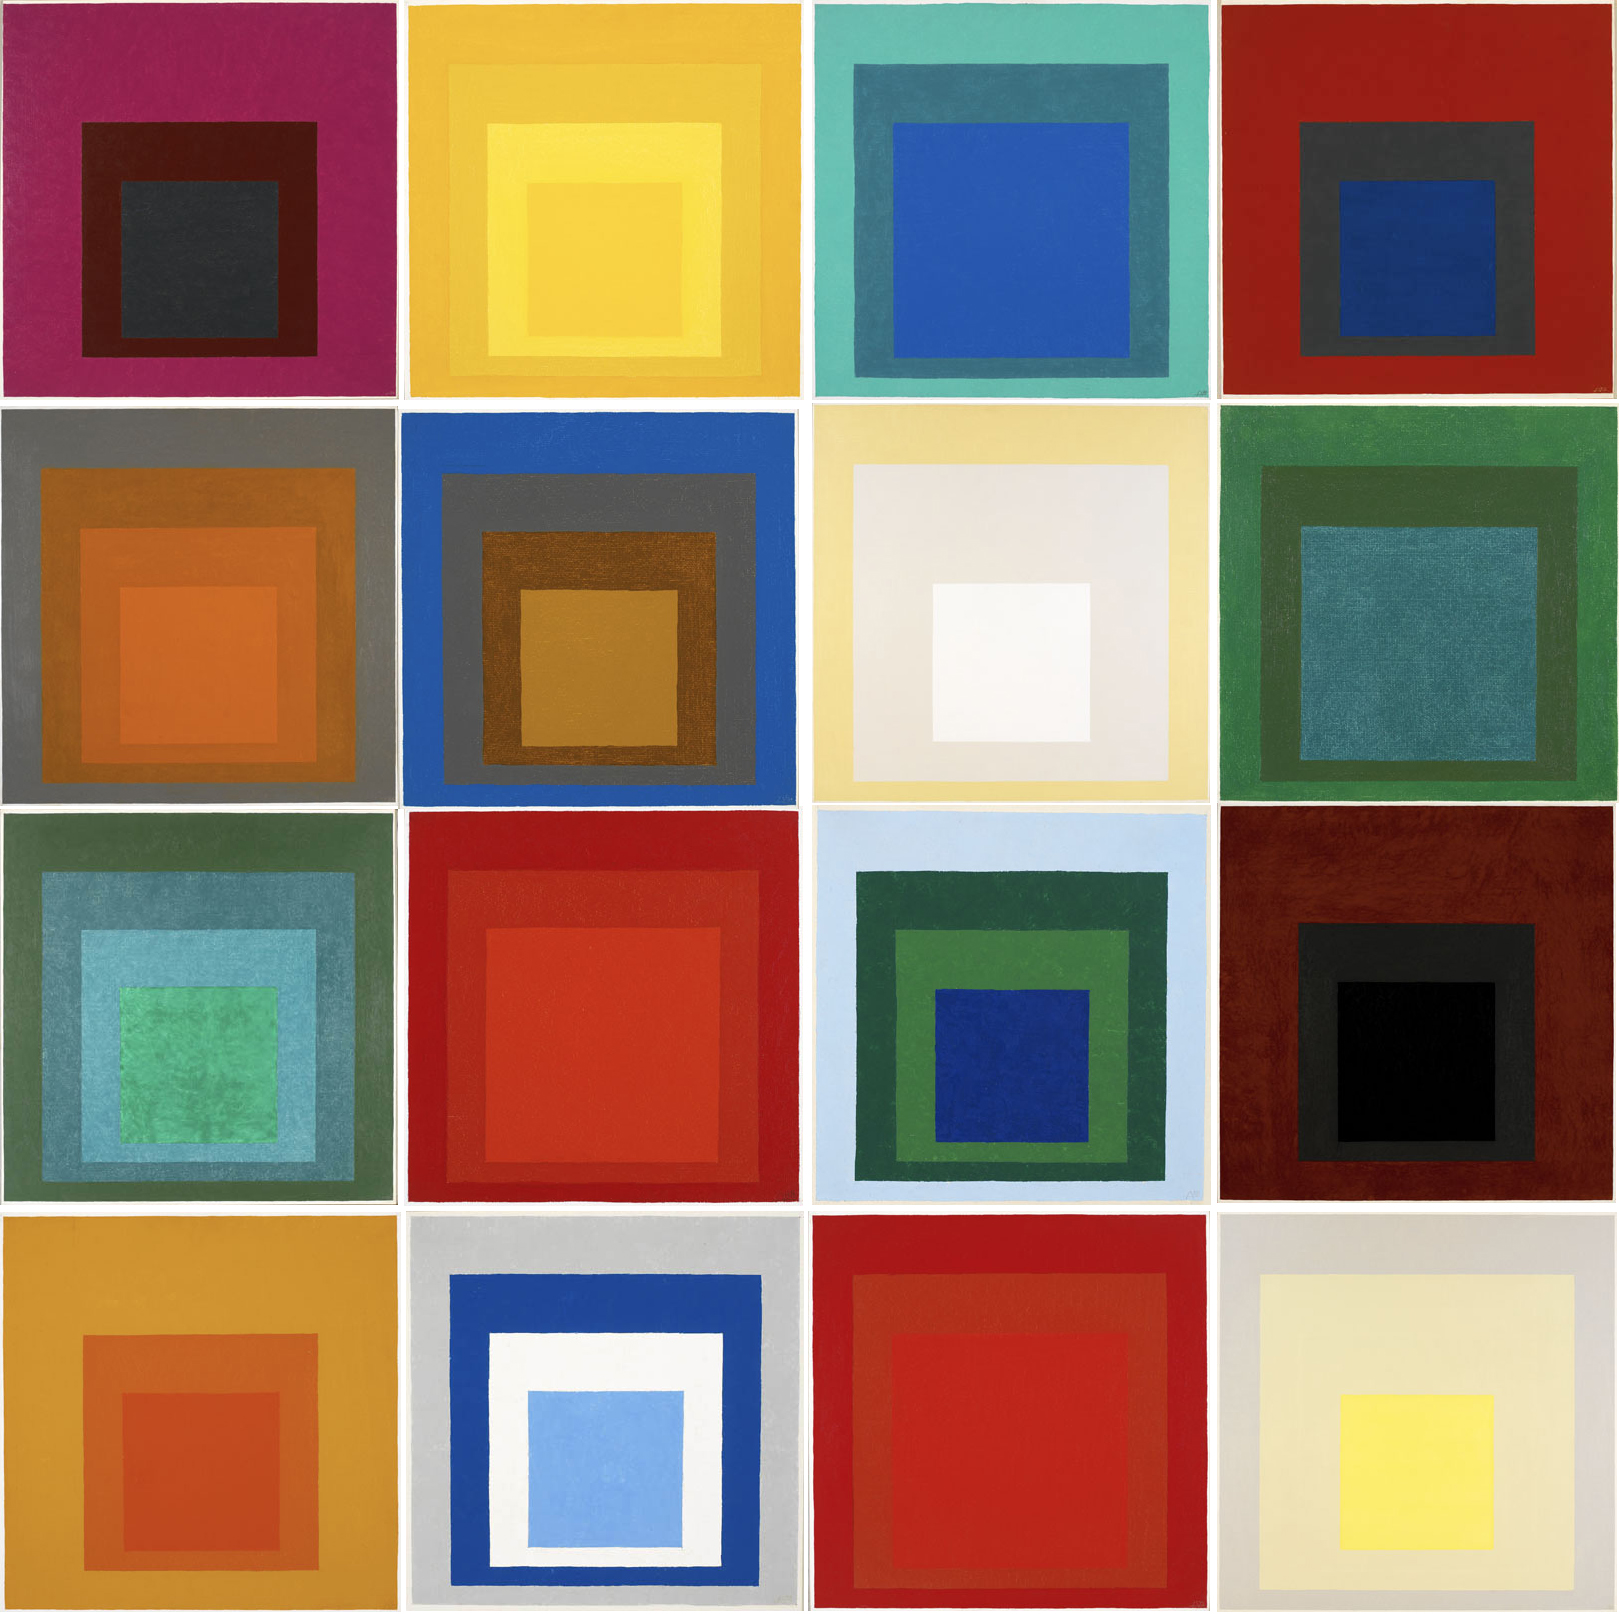 Several of Albers' paintings of nested squares that explored color relationships.